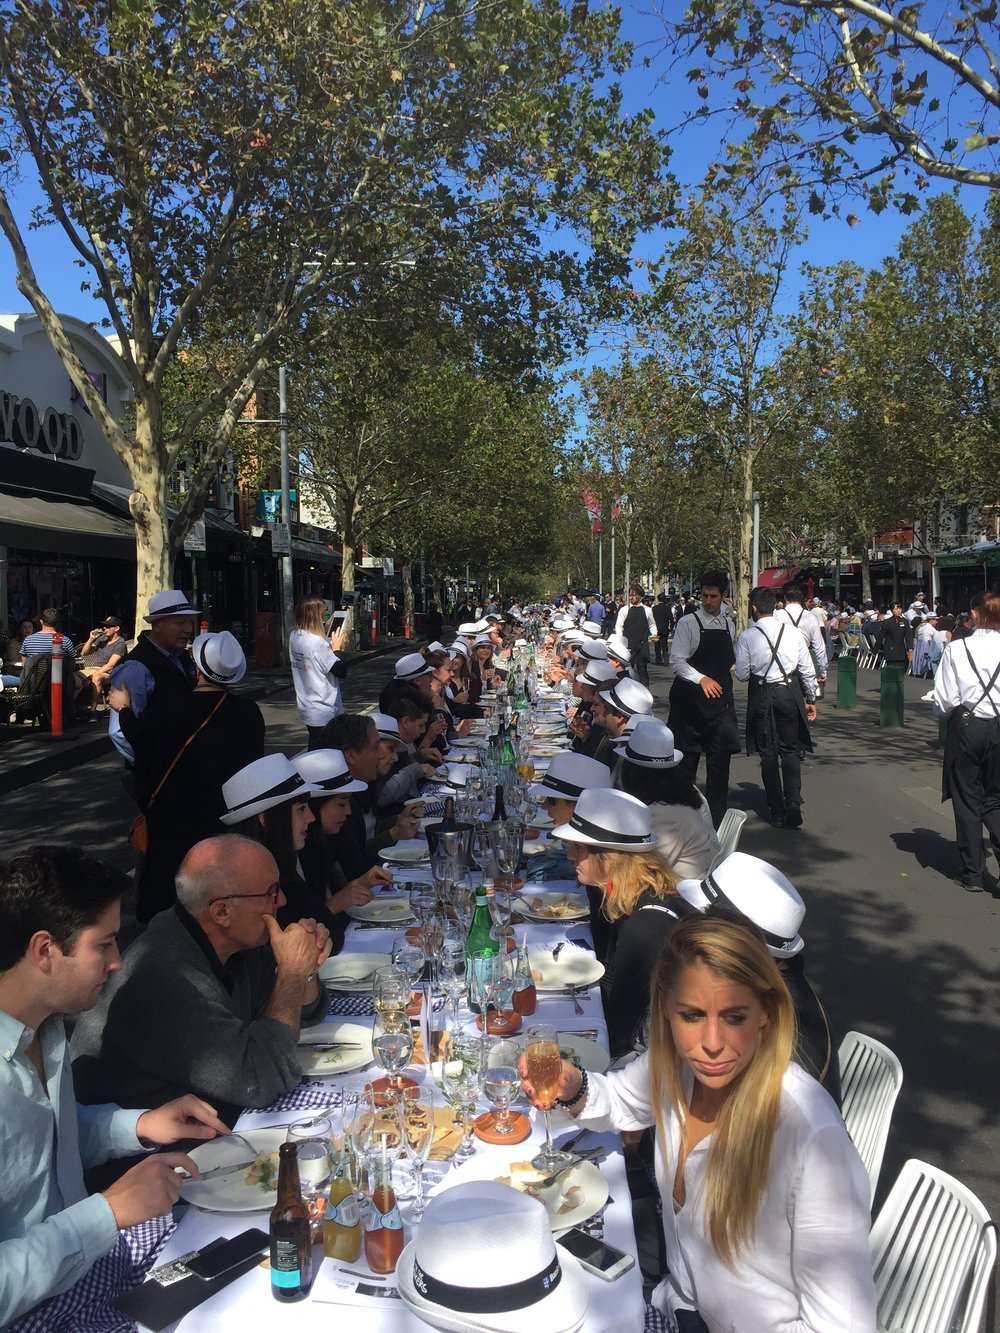 Melbourne Food and Wine Festival's 25th Anniversarymarshals